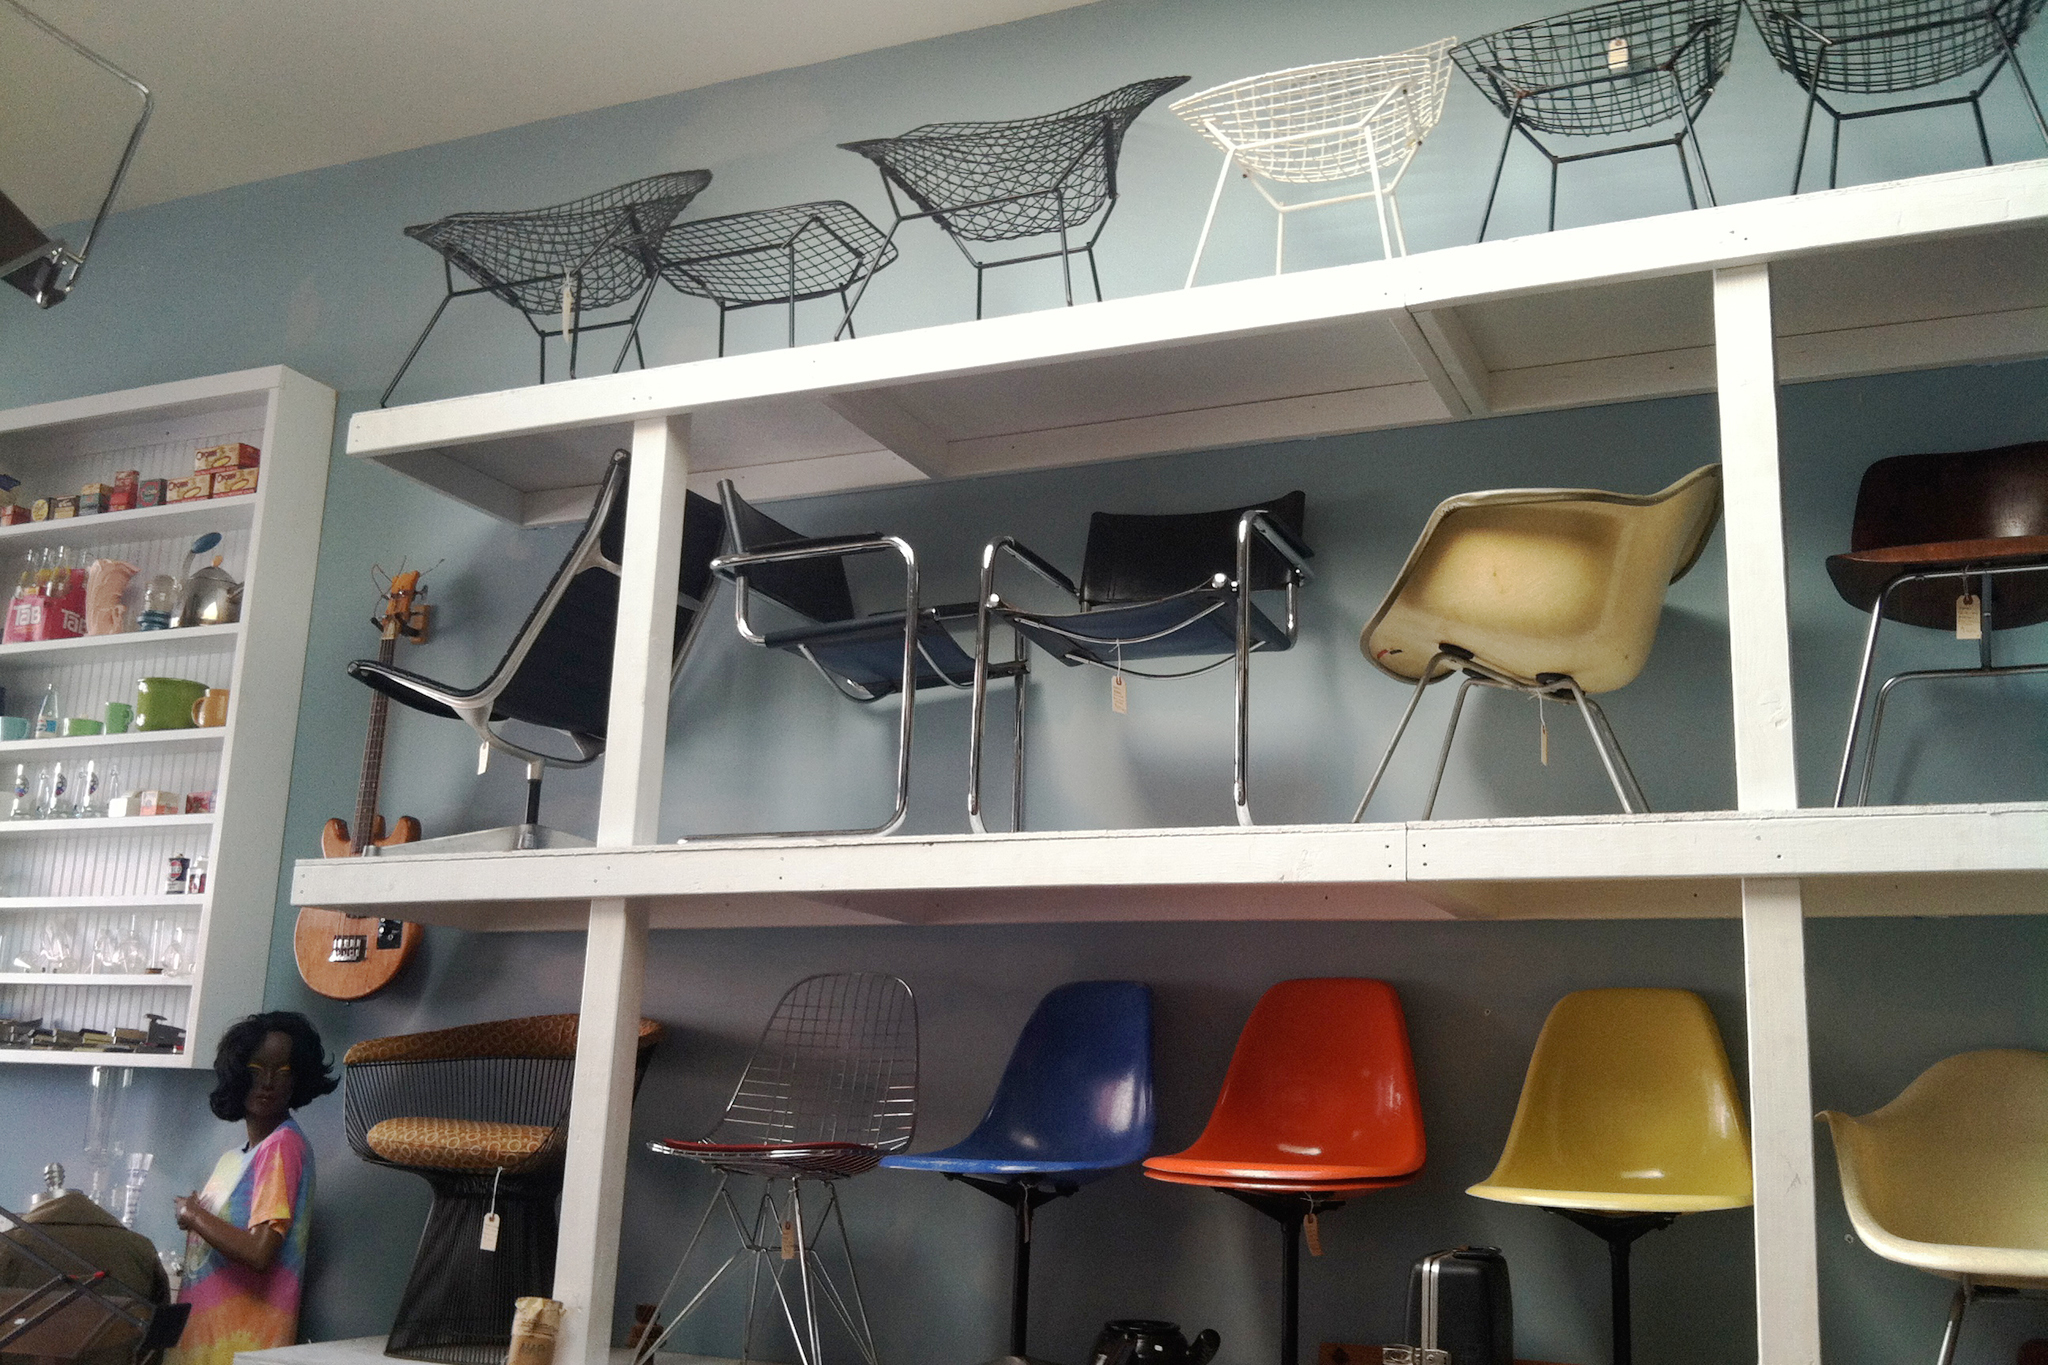 The Best Vintage Clothing And Furniture Stores In San Franciscou2014Time Out Idea